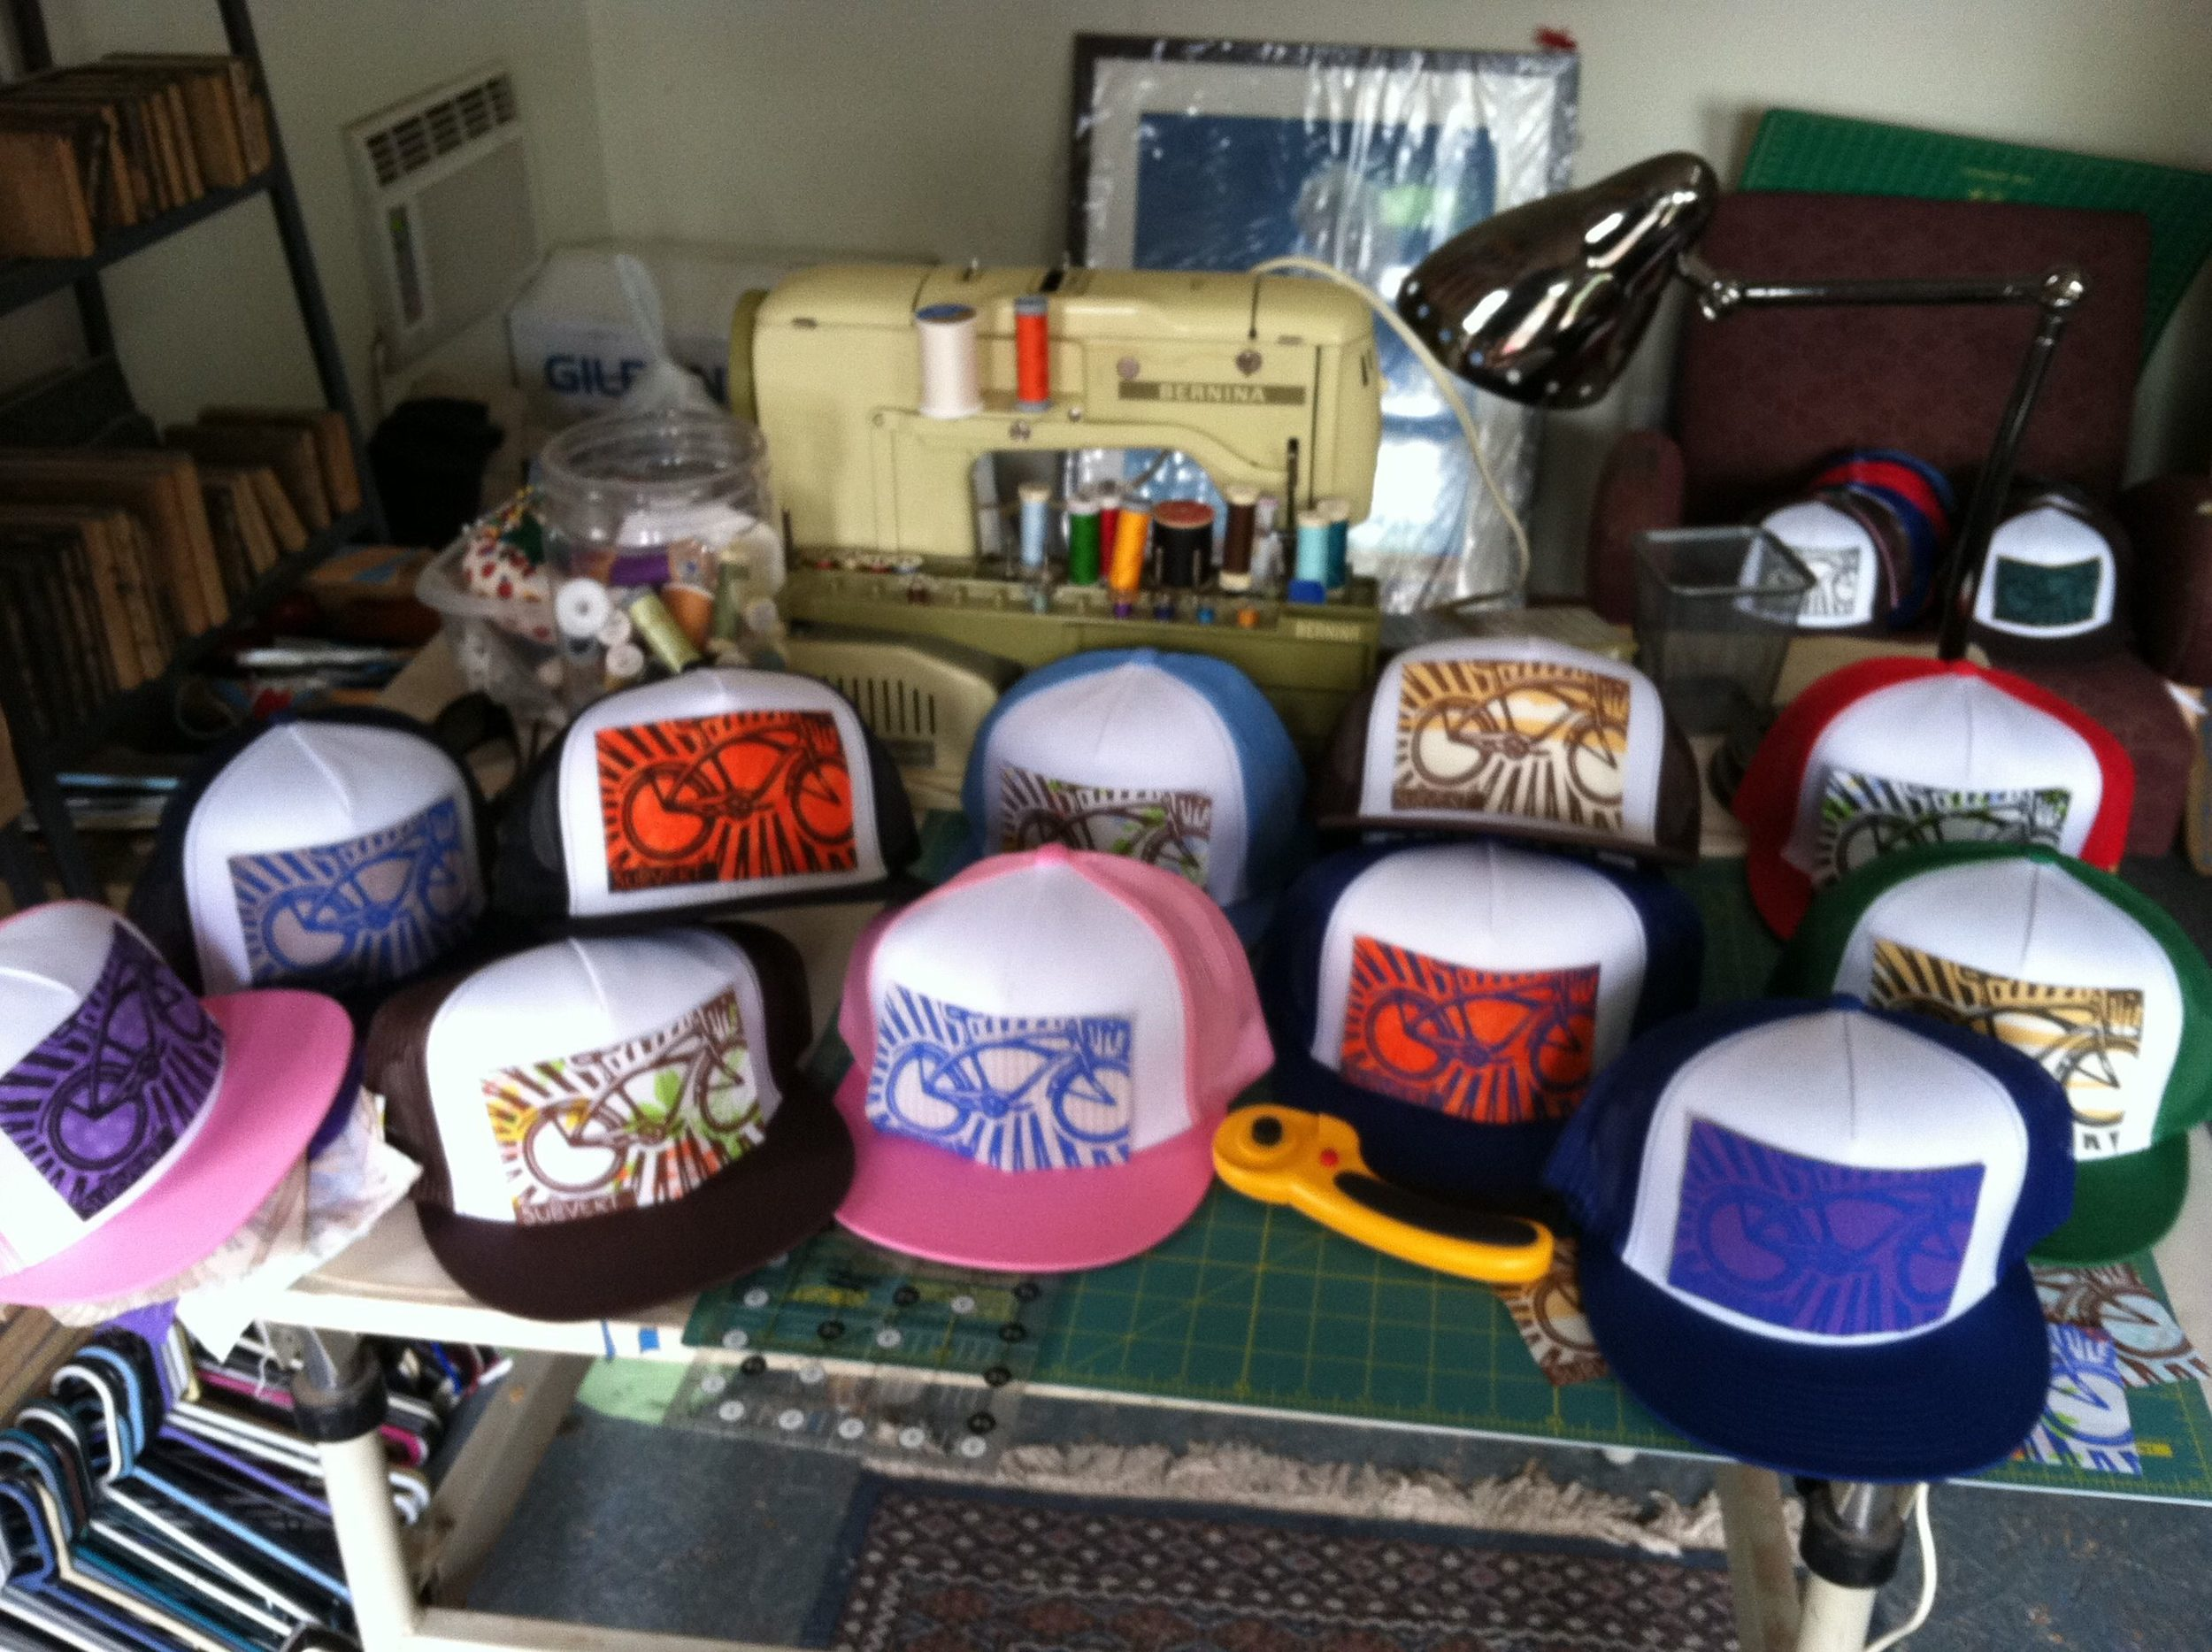 A batch of hats for Chile Pepper Bike Shop.